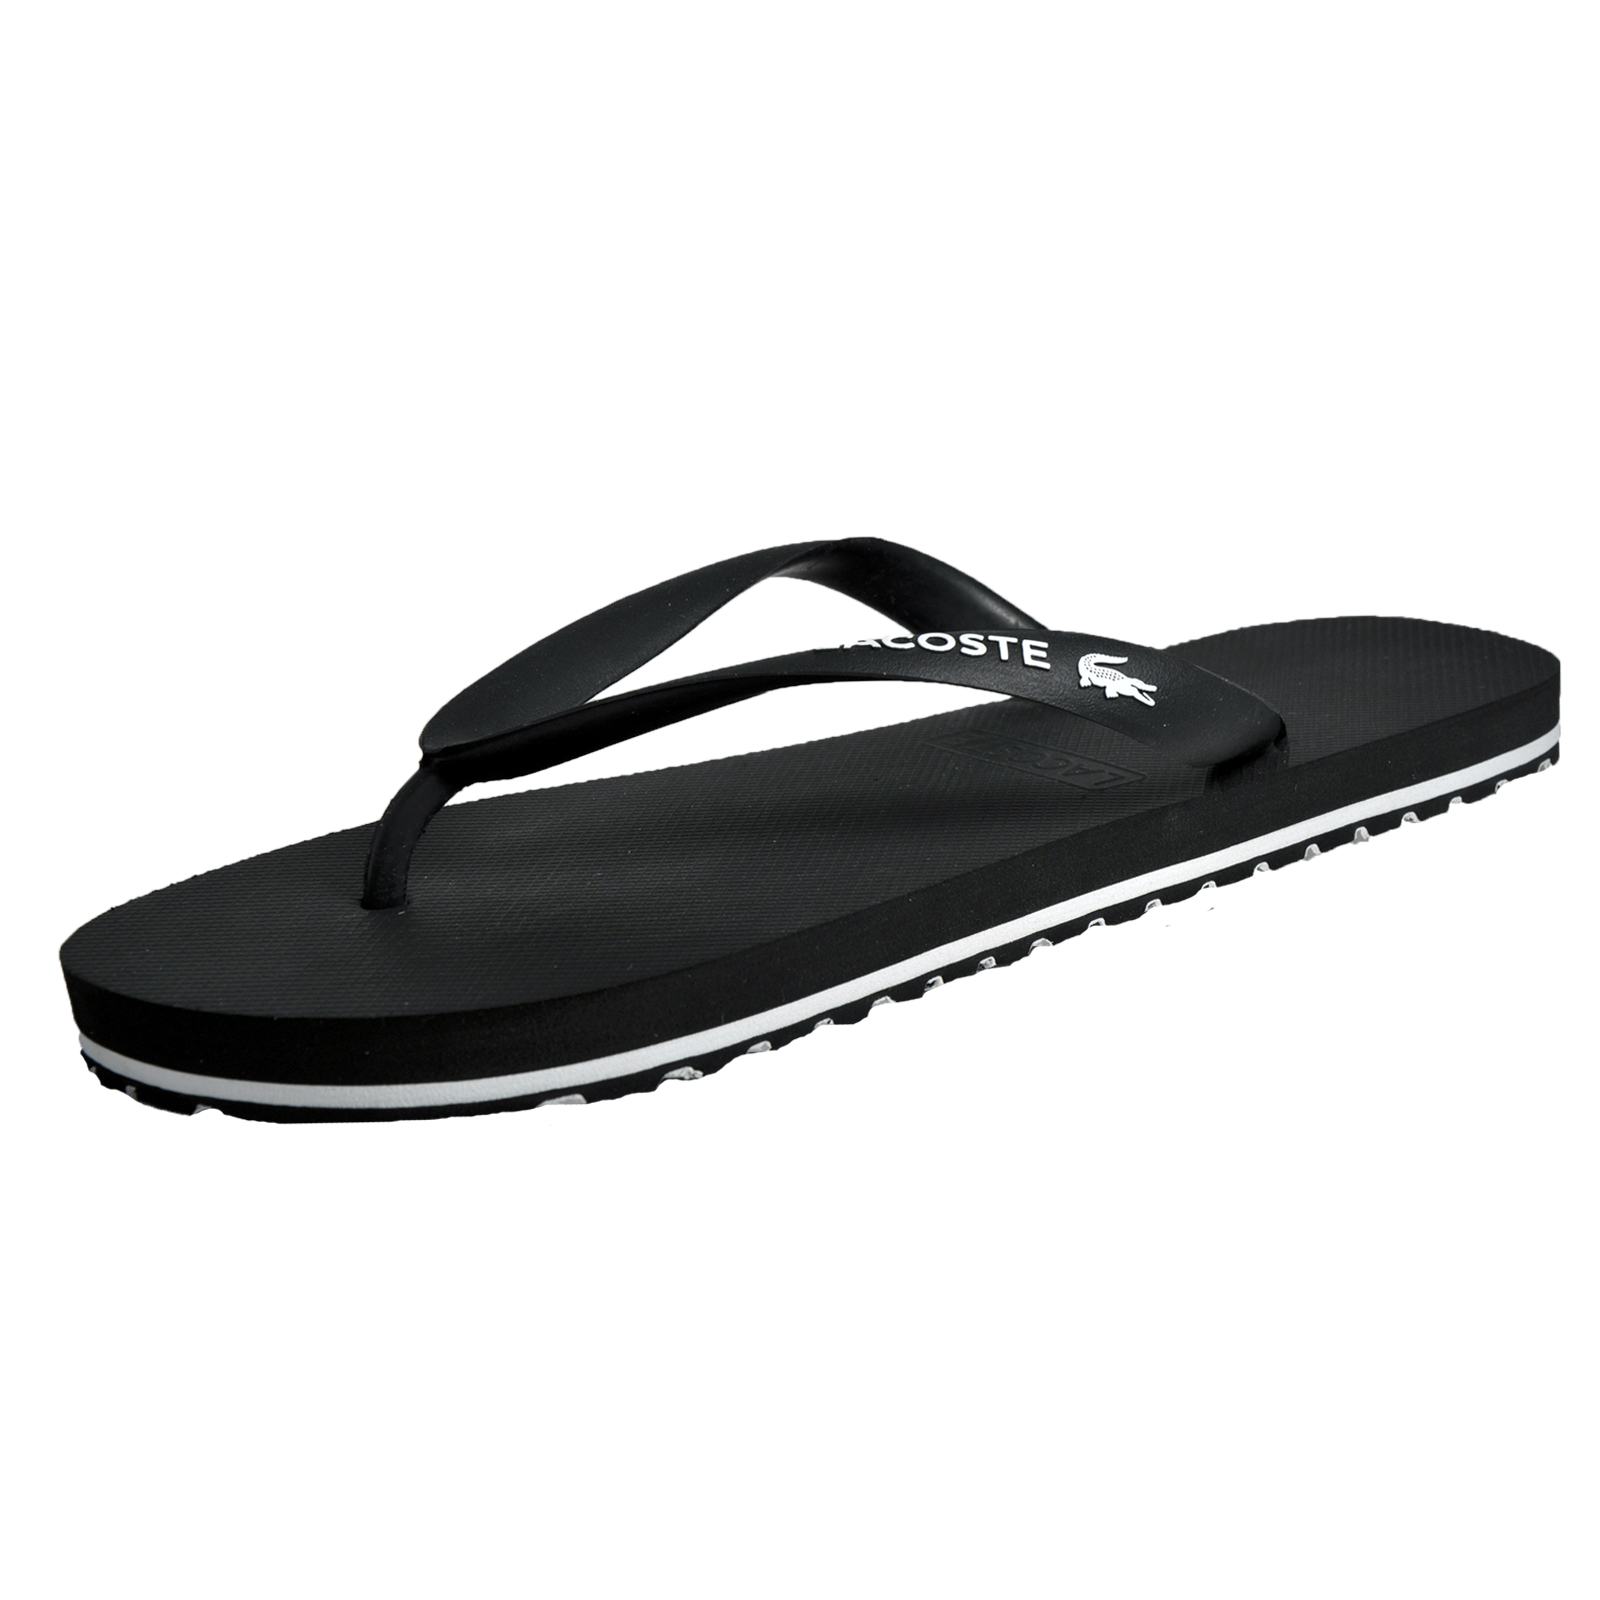 0f9b5f2649ced Details about Lacoste Nosara Mens Designer Flip Flop Summer Holiday Sandals  Black